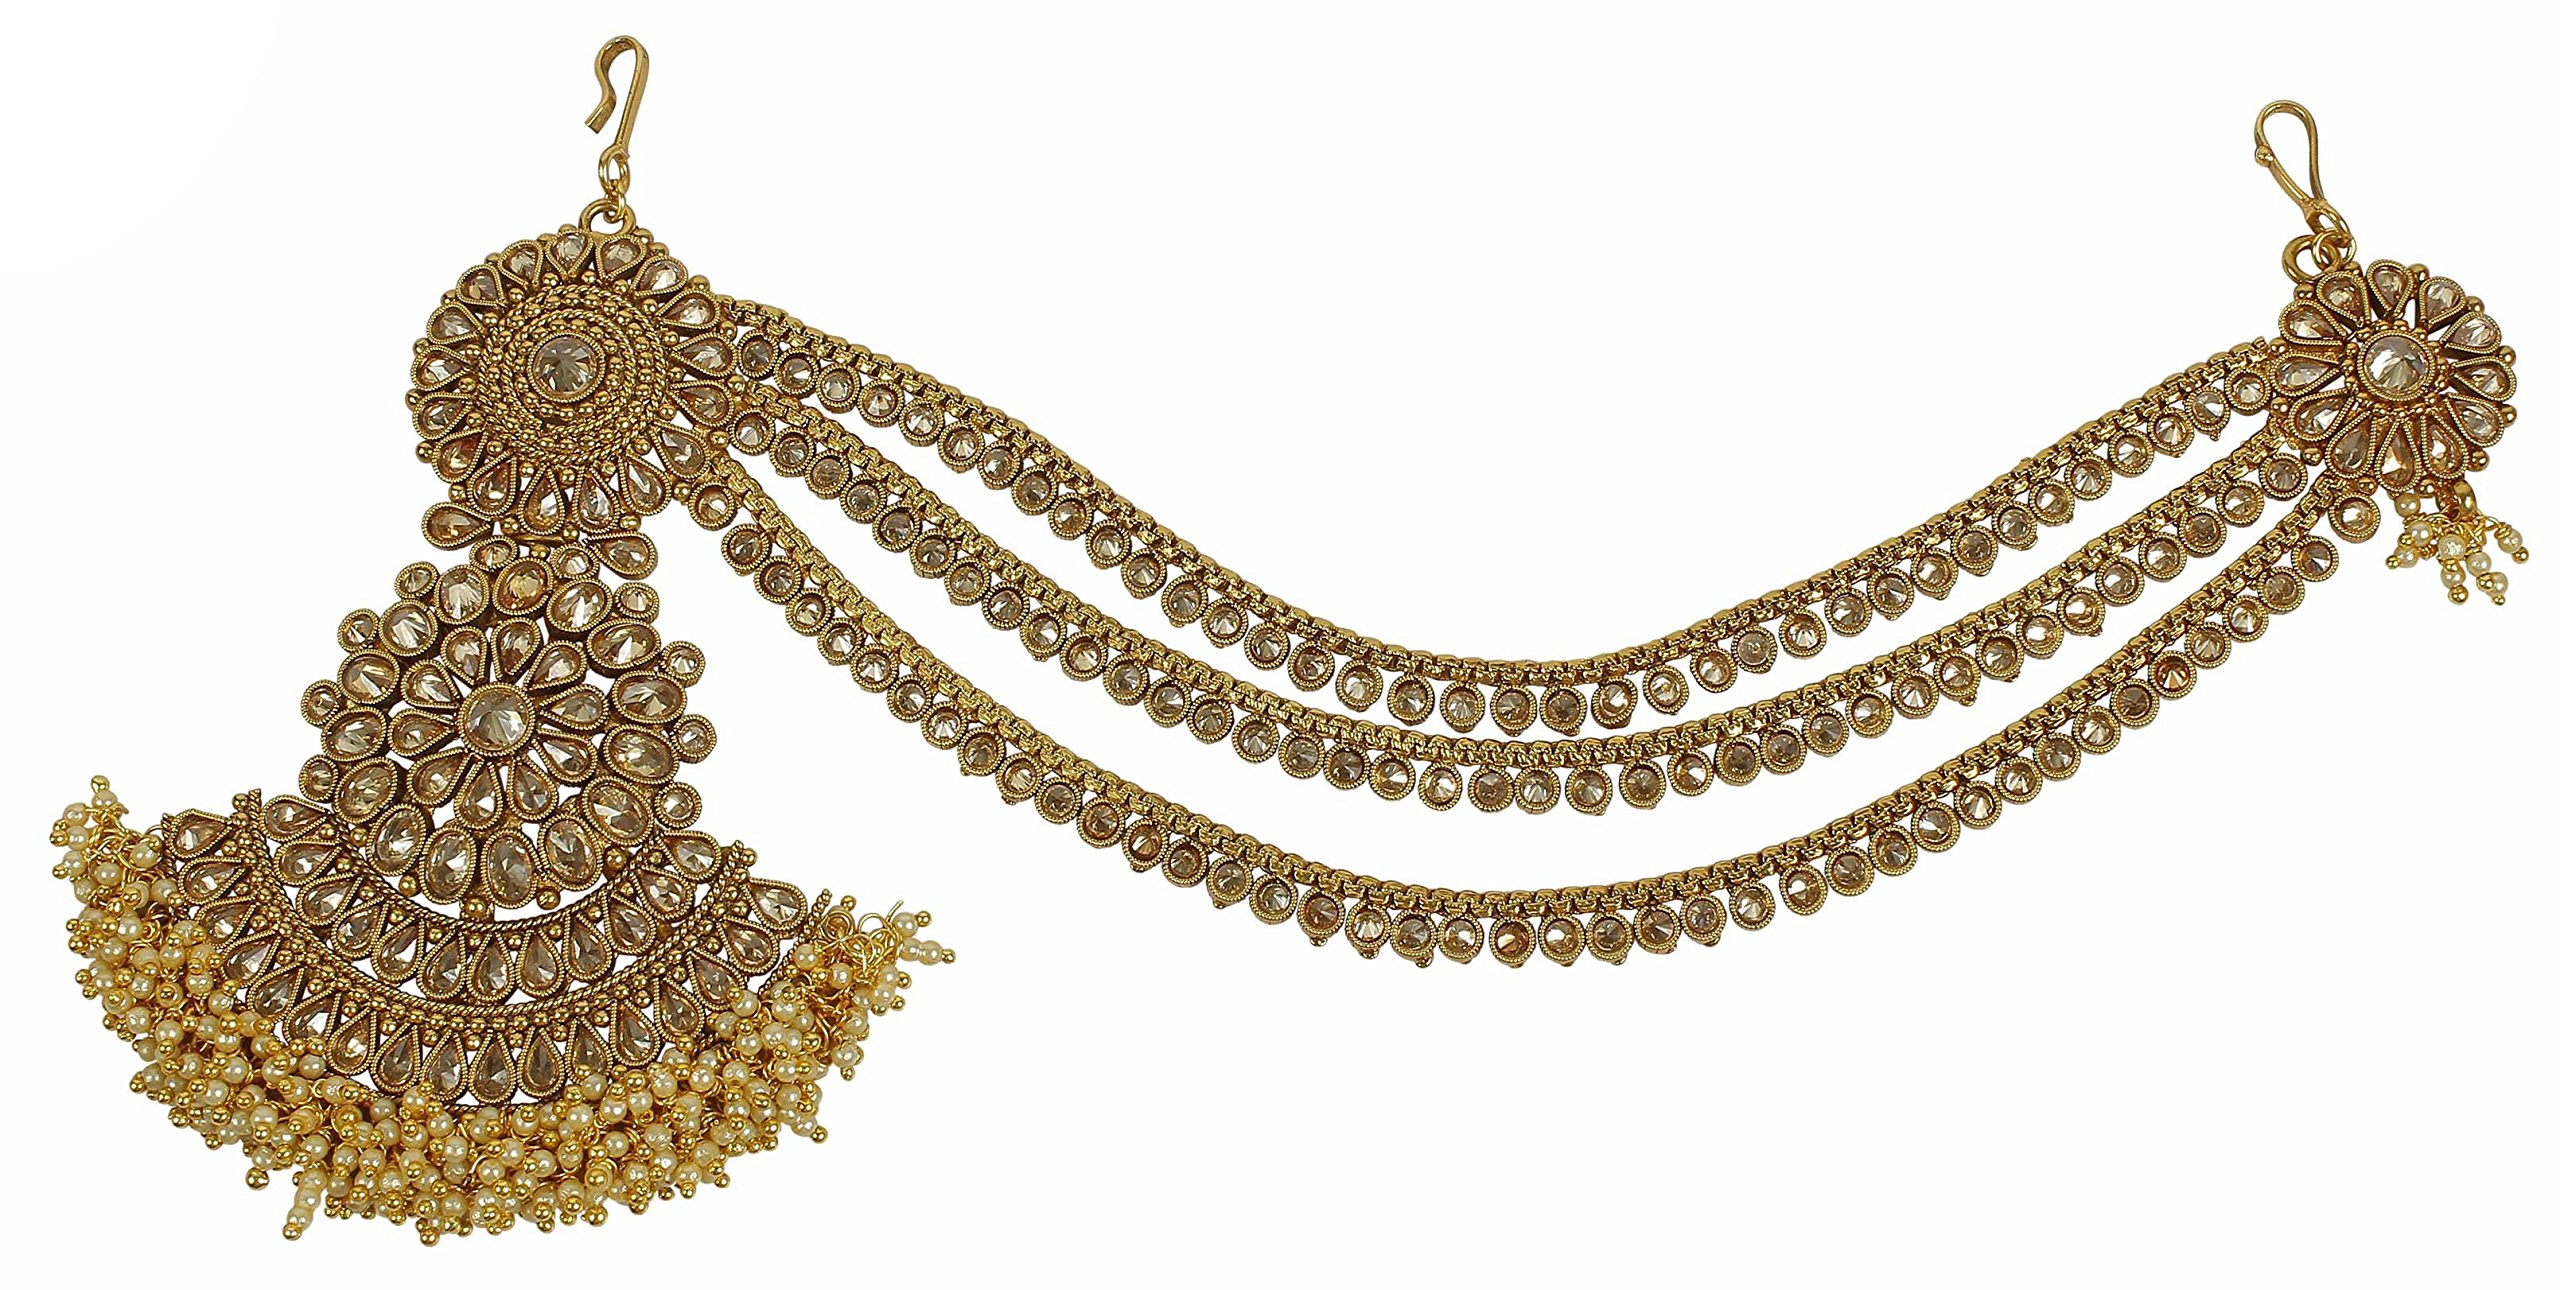 MUCH-MORE Amazing Style Stunning Gold Plated Indian Matha Patti Head Partywear Jewelry For Women (57)